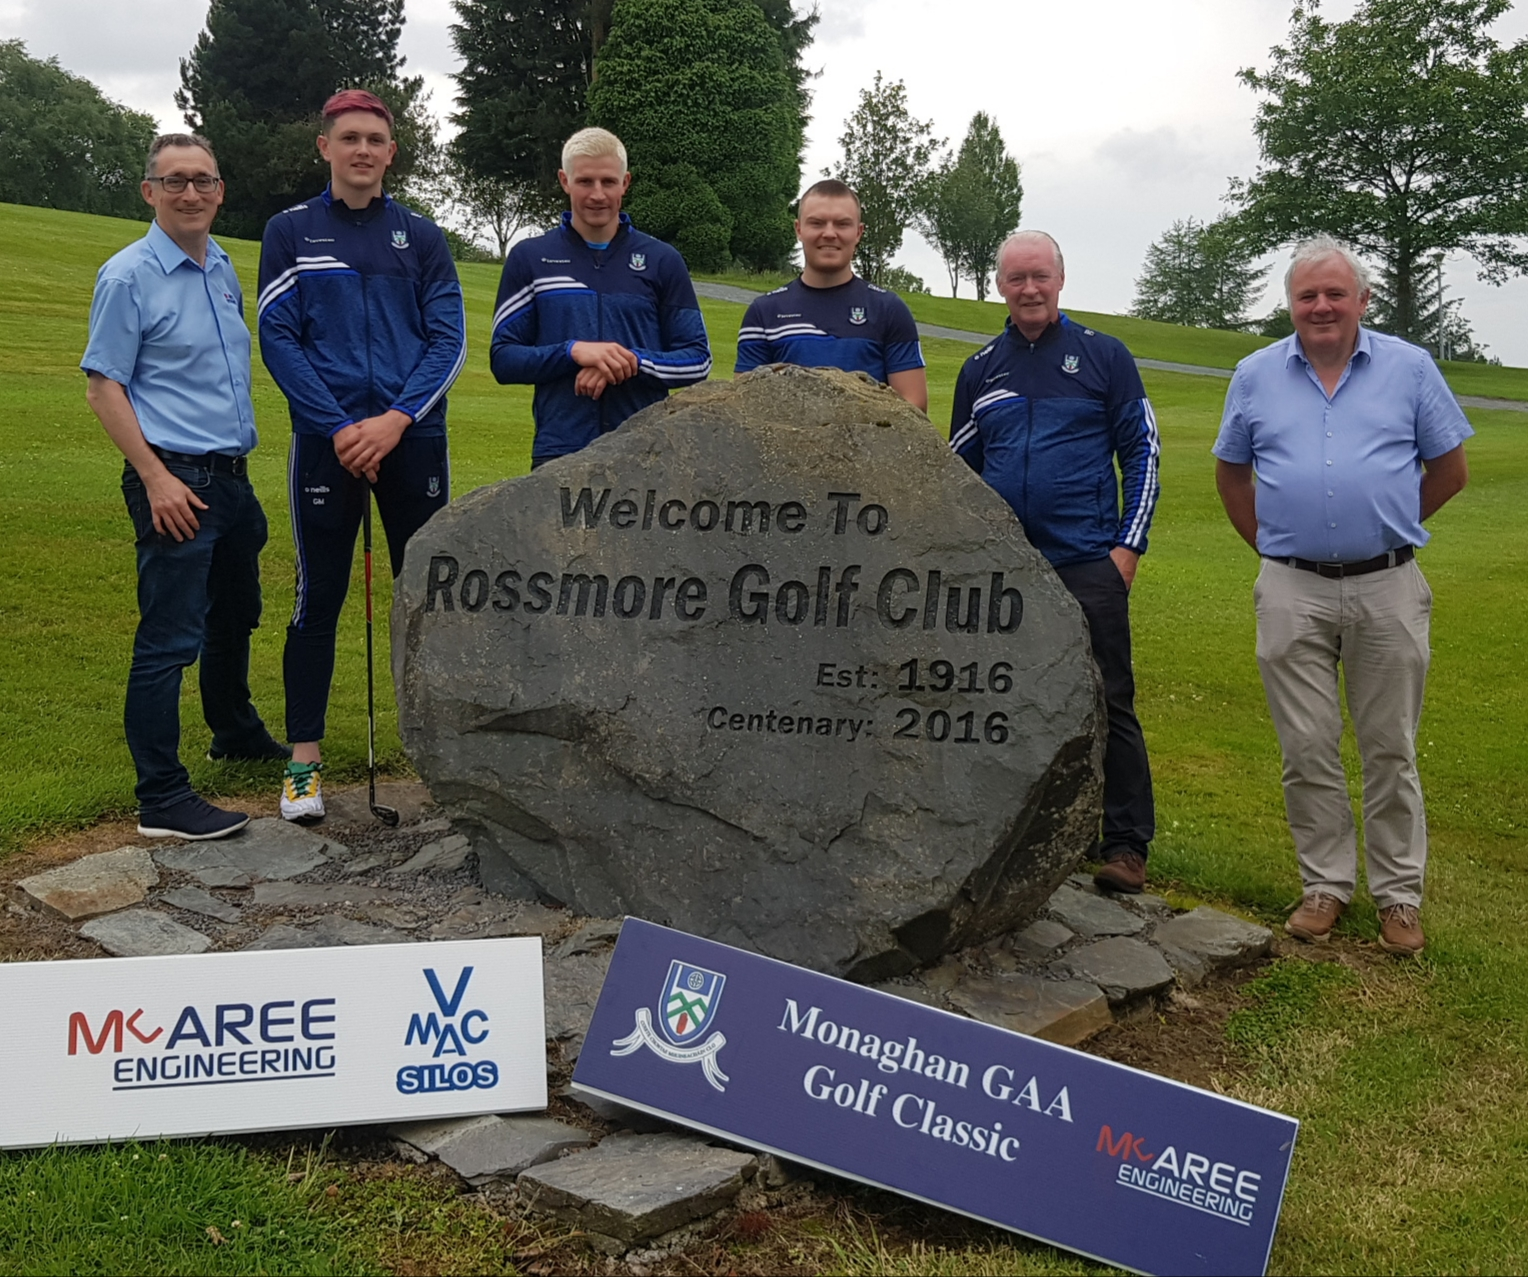 McAree Engineering Monaghan GAA Golf Classic Tee Times now available on the Rossmore Golf Club BRS System